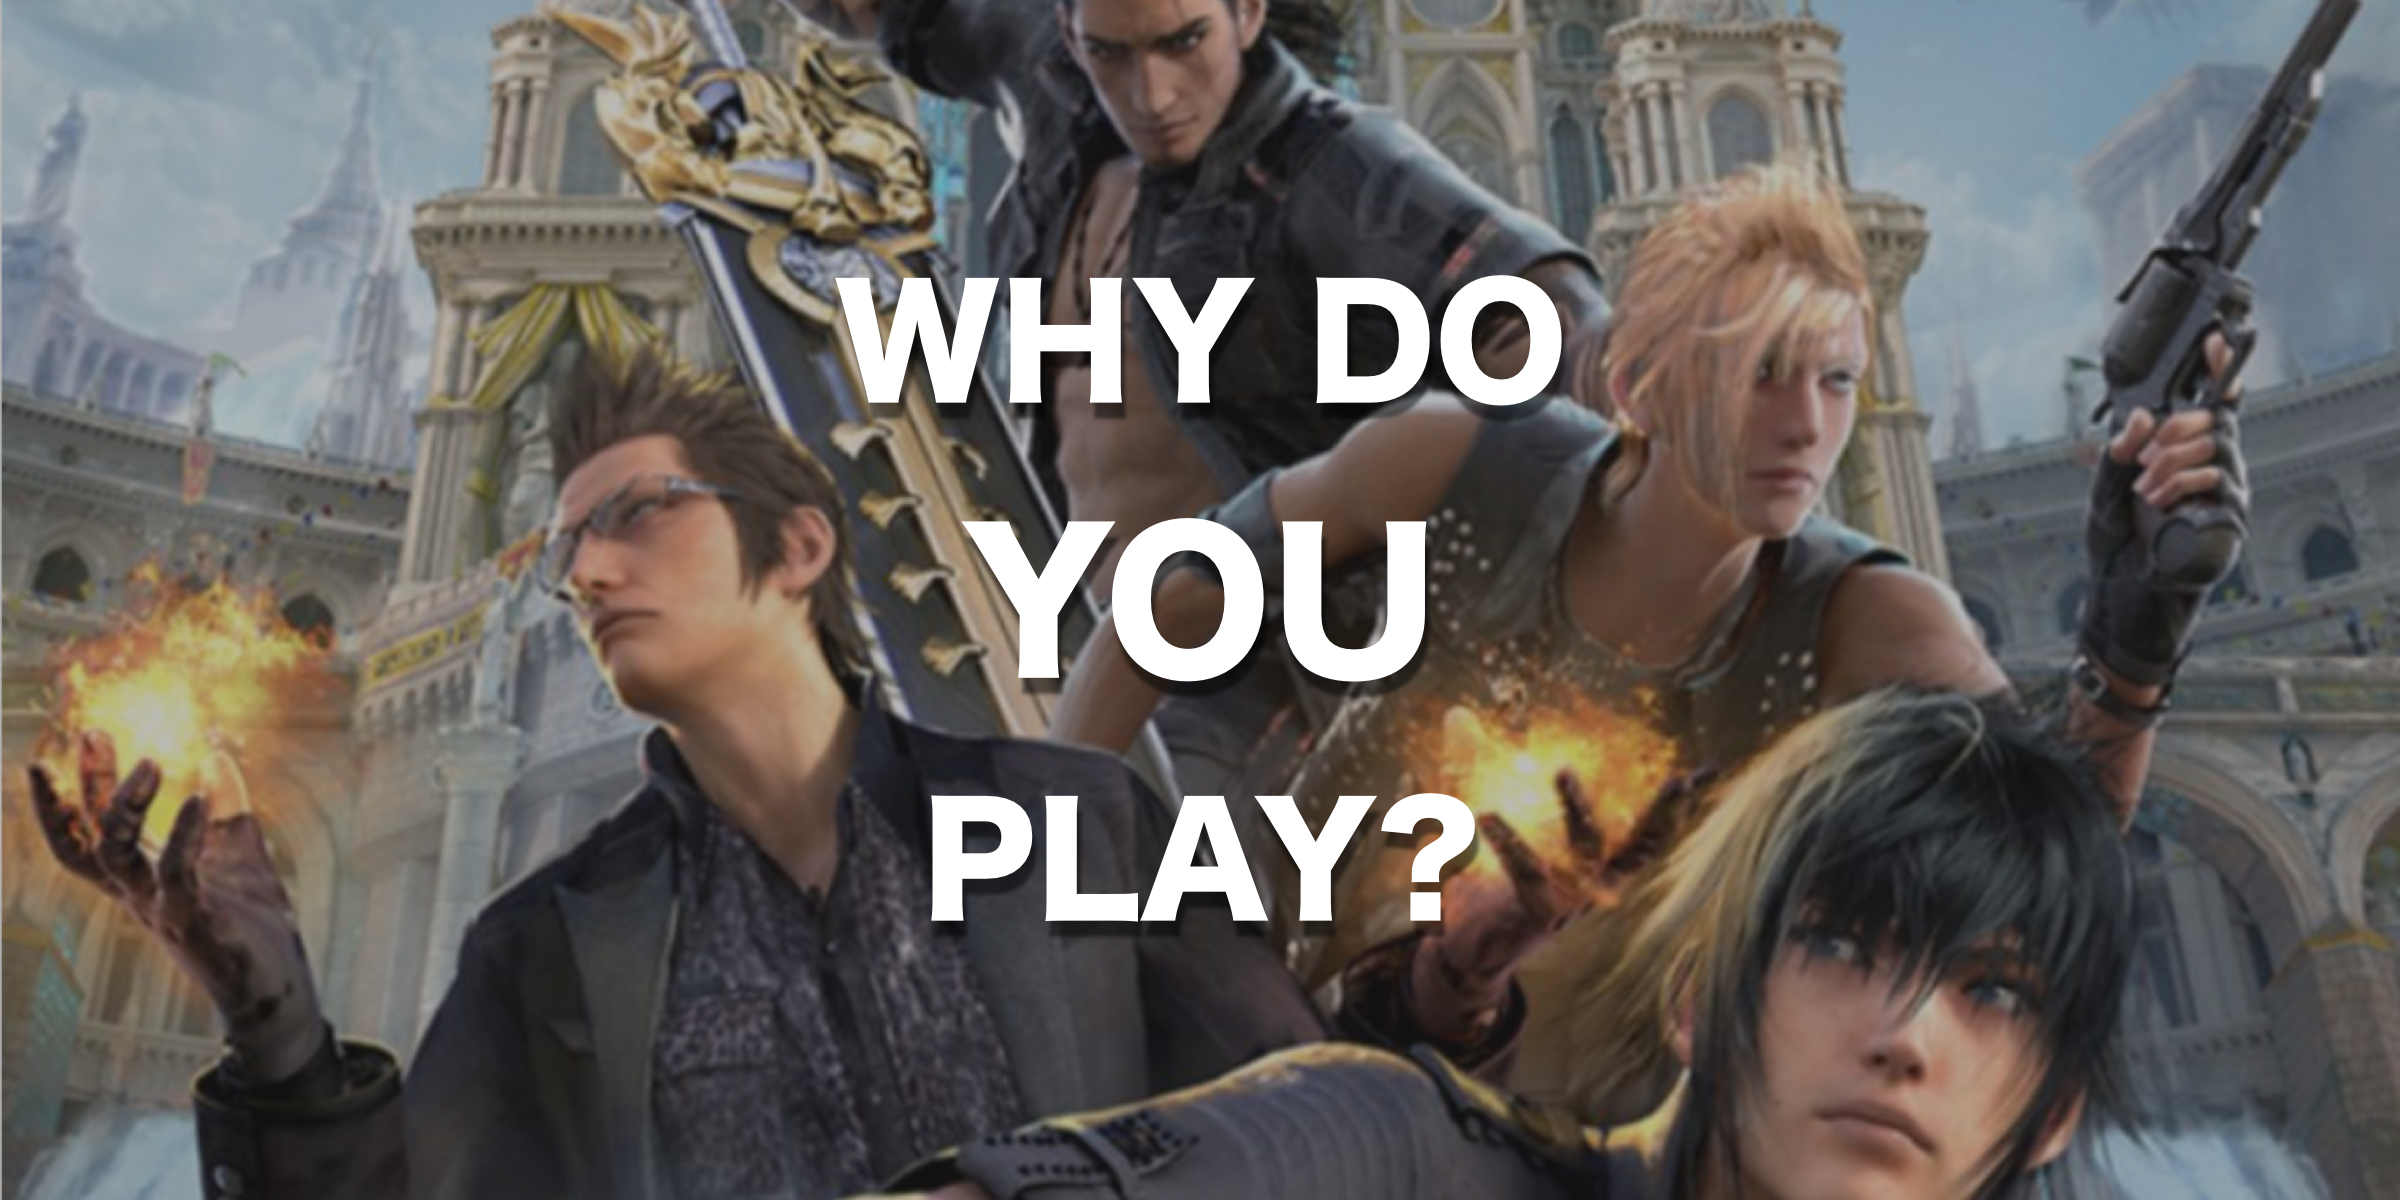 Why do you play